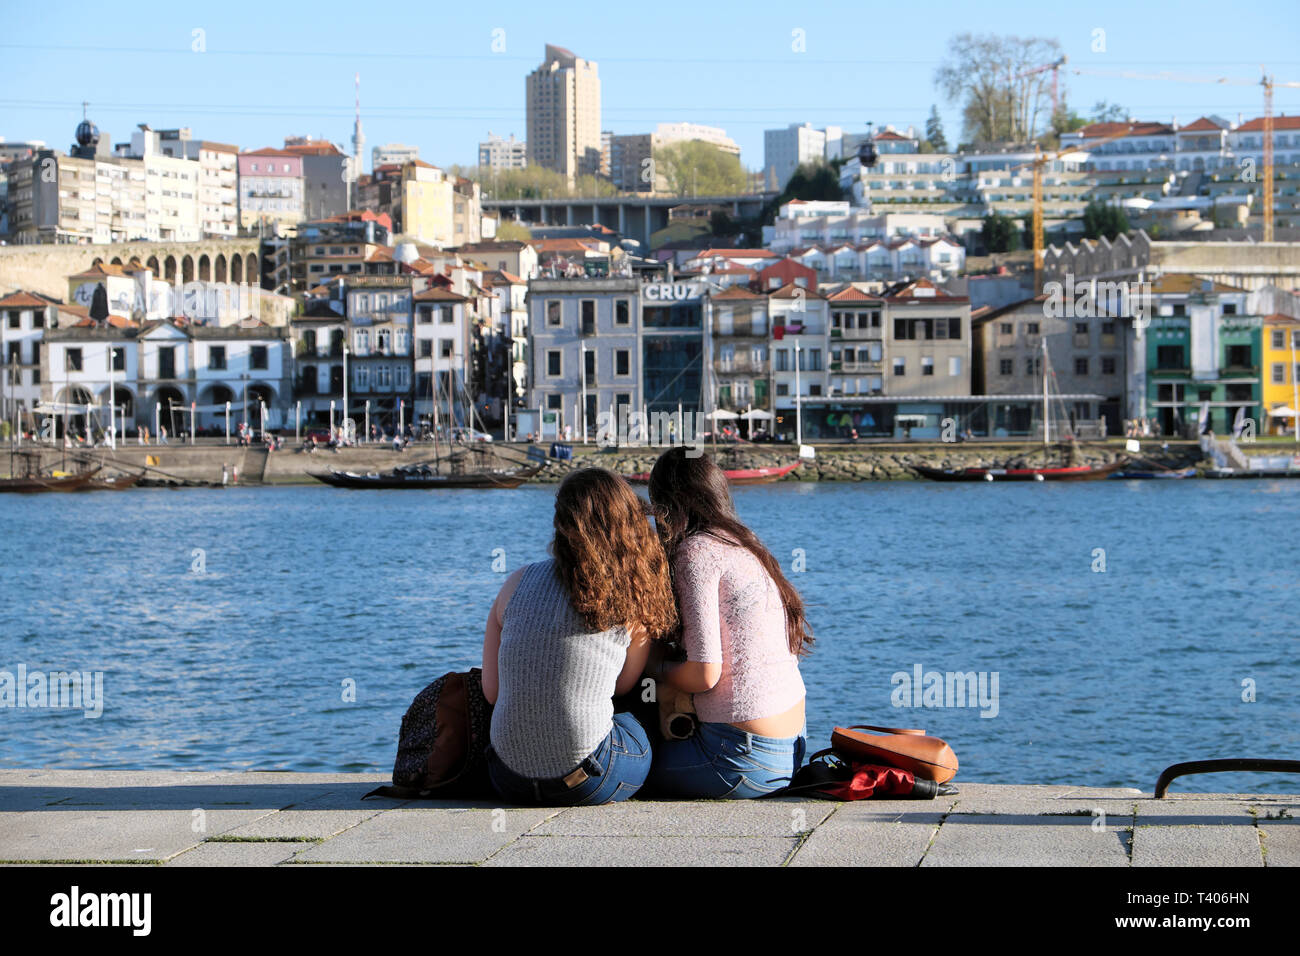 Two young women sitting together eating on the quay looking across the Douro River at Vila Nova de Gaia in Porto, Portugal Europe   KATHY DEWITT Stock Photo